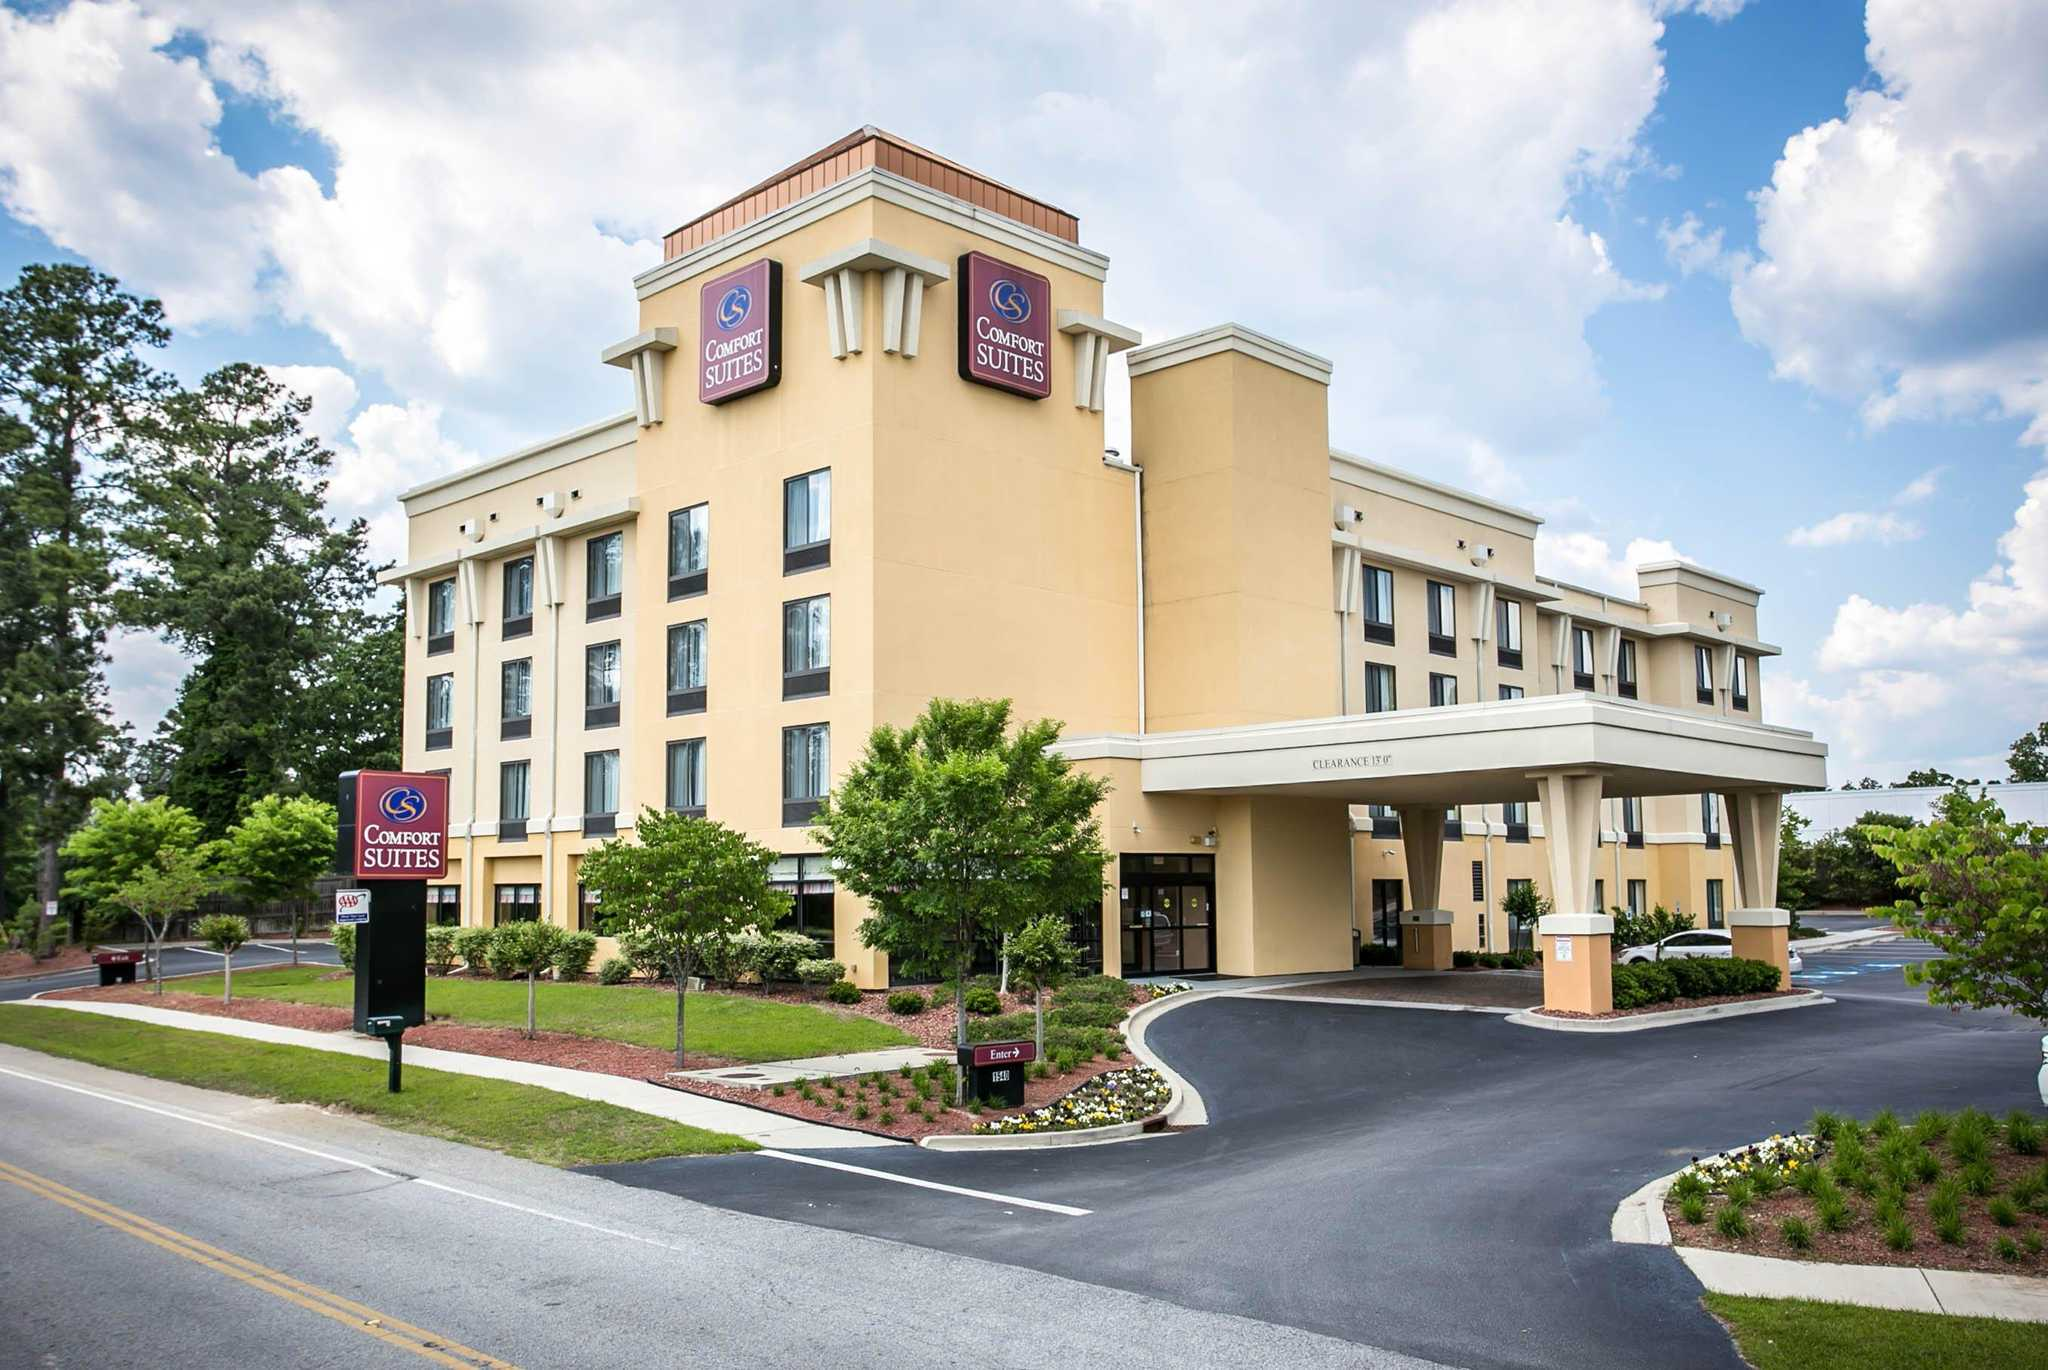 Comfort Suites Columbia Sc Business Page